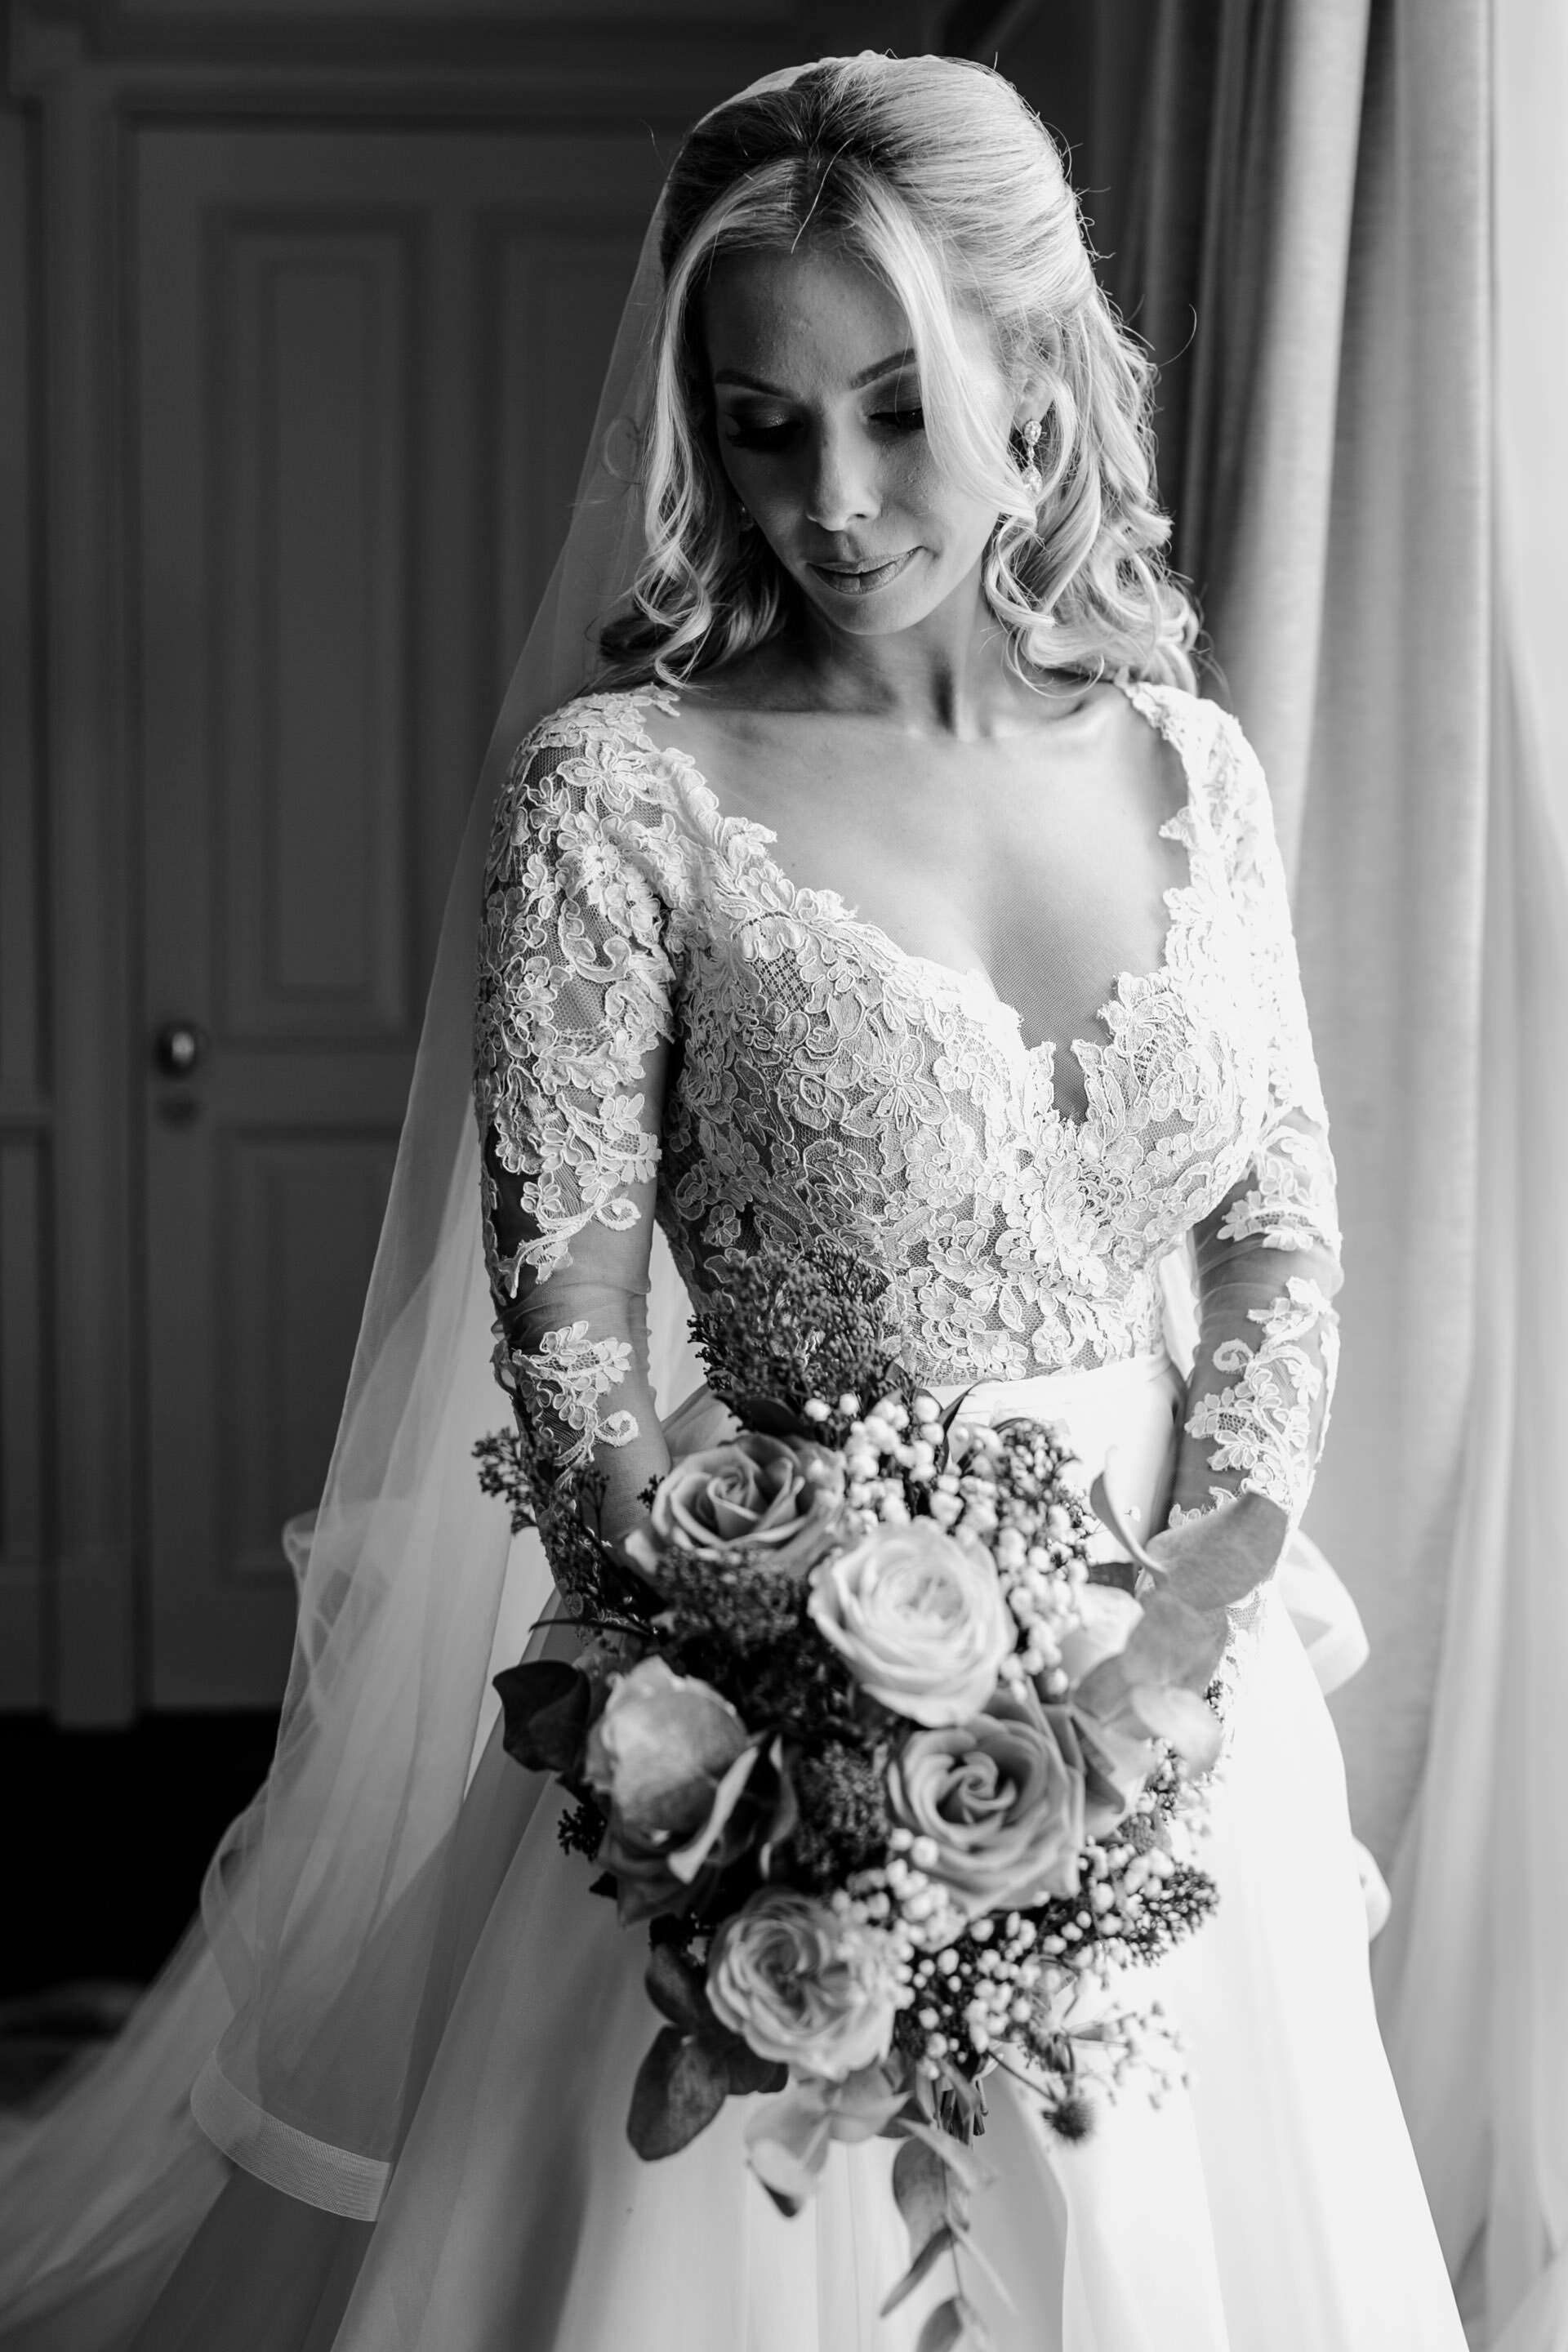 c&s_the_westbury_wedding_photographer_livia_figueiredo_15.jpg